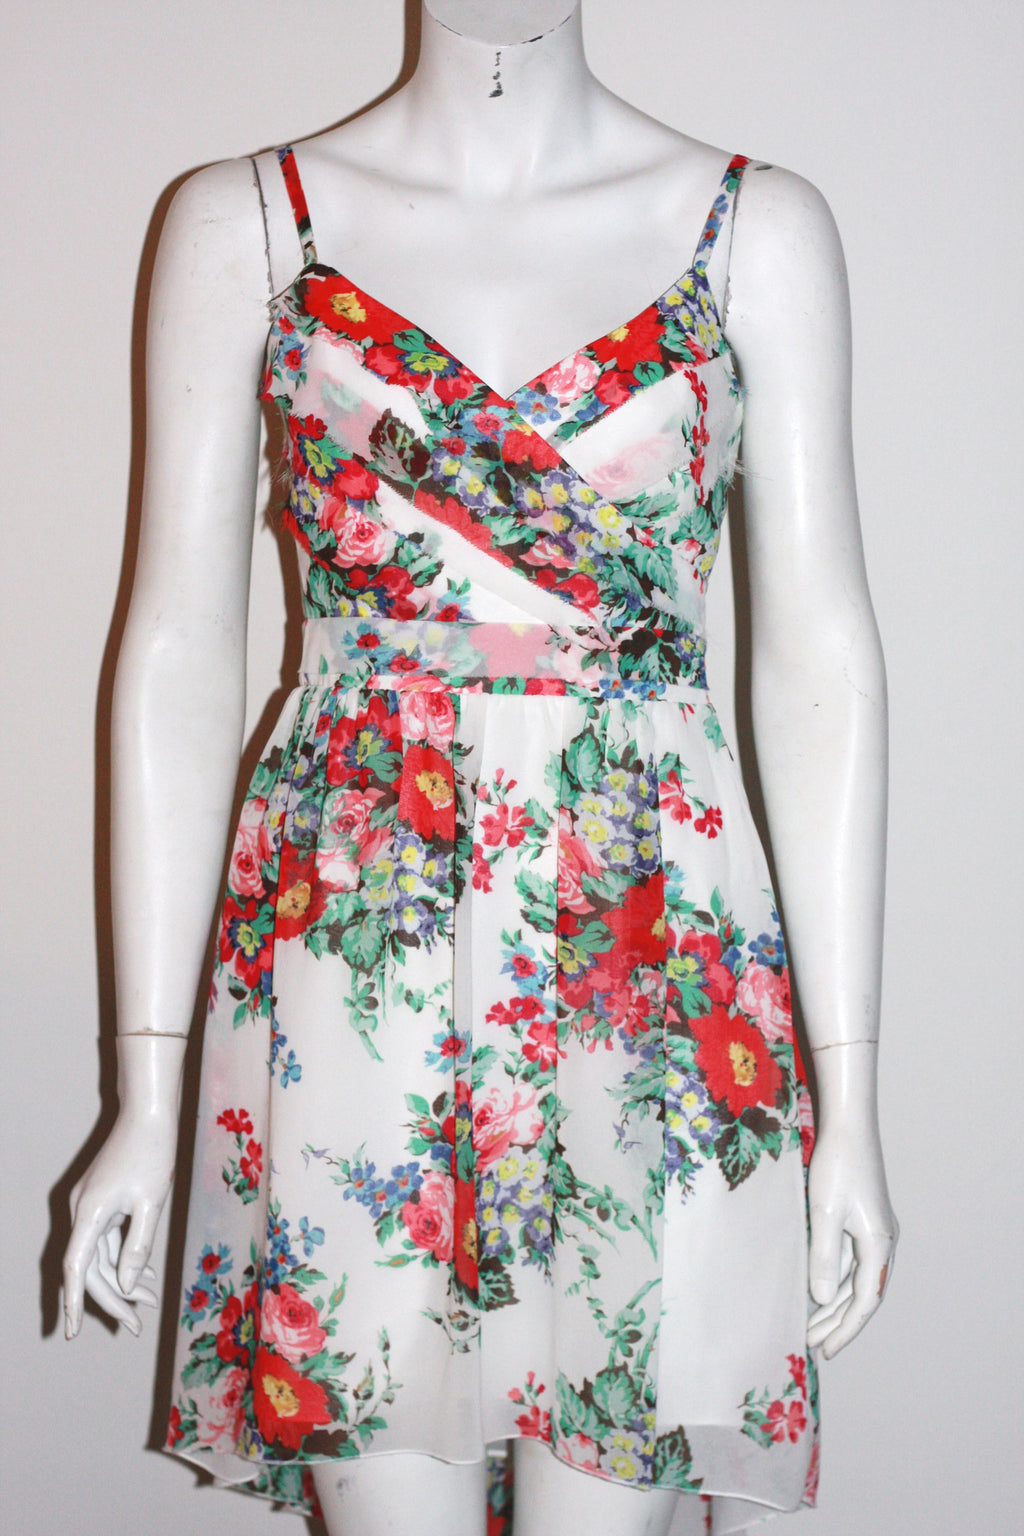 Lipsy London  Chiffon Floral Print Sun Dress - Joyce's Closet  - 1